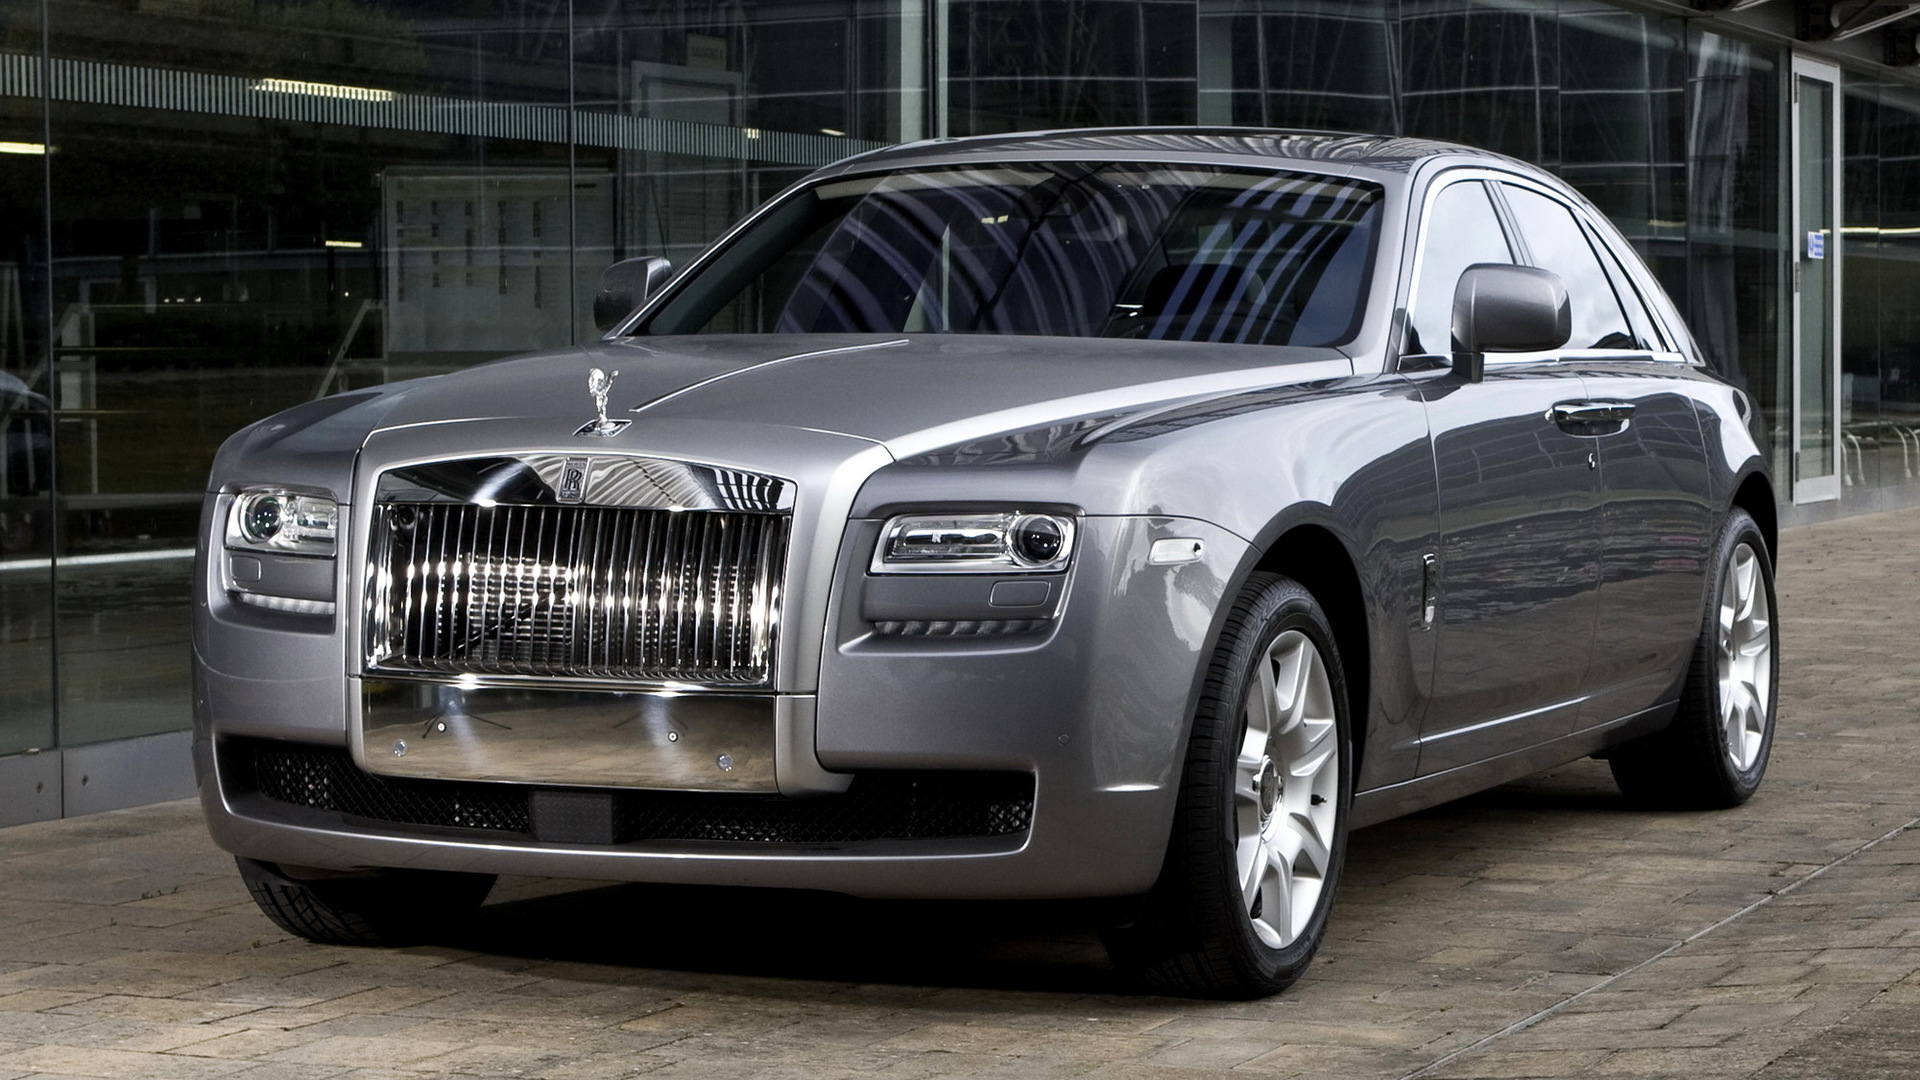 Rolls Royce Ghost 20 Car Background: Rolls-Royce Ghost (2009) Wallpapers And HD Images